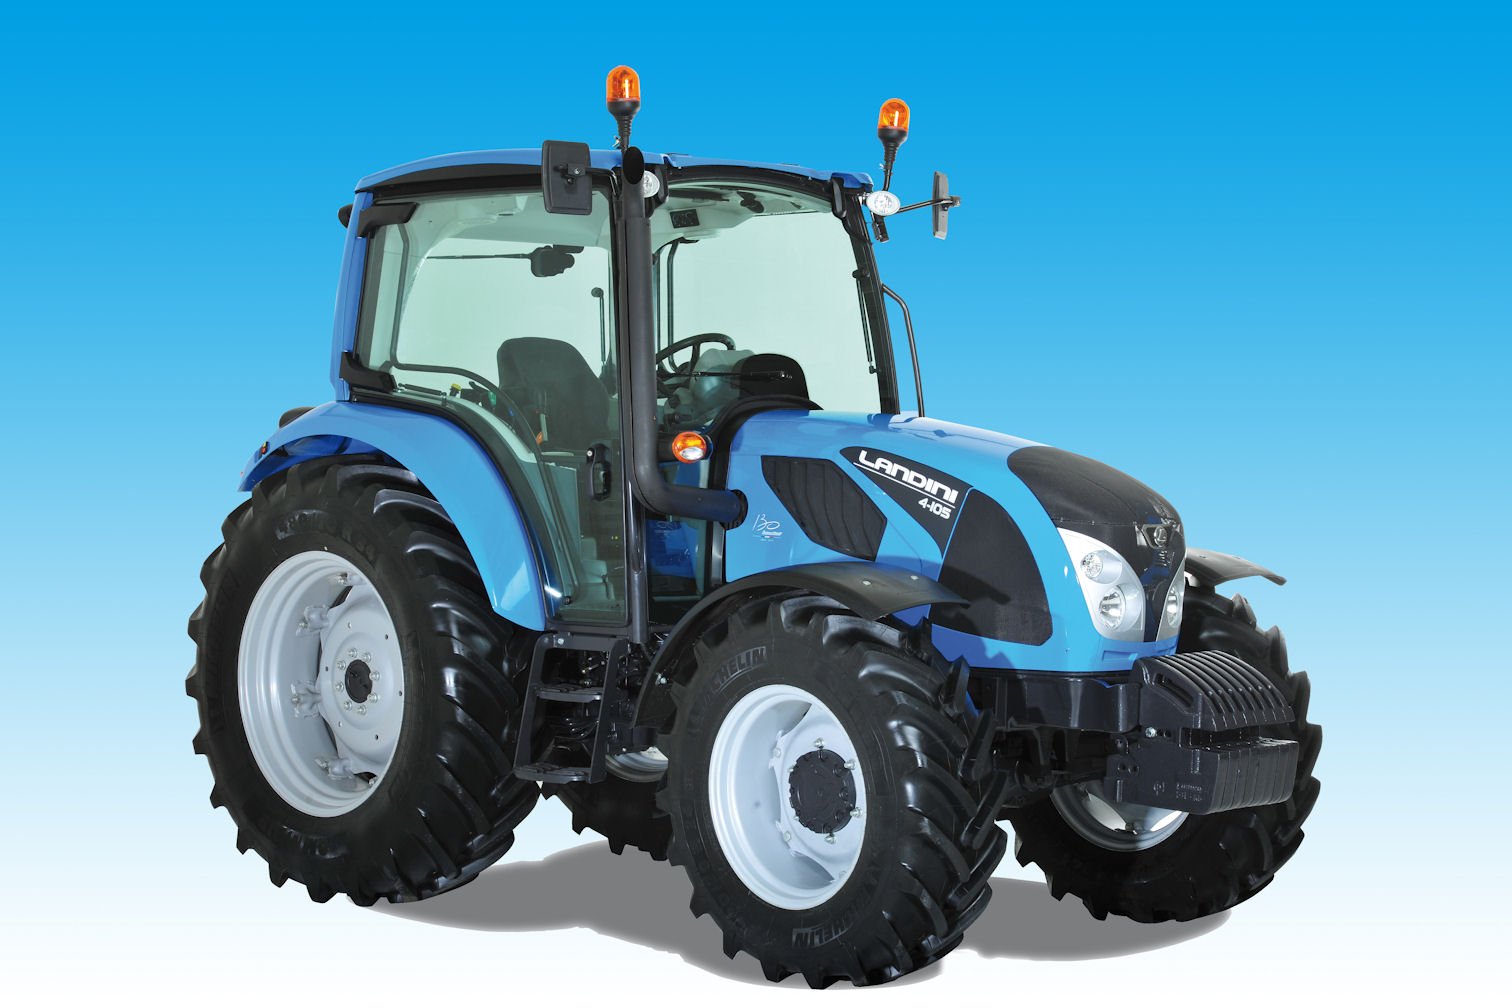 Landini 4 Series tractor is an all-new design primarily for the livestock sector with power outputs from 90-107hp using a compact four-cylinder engine.